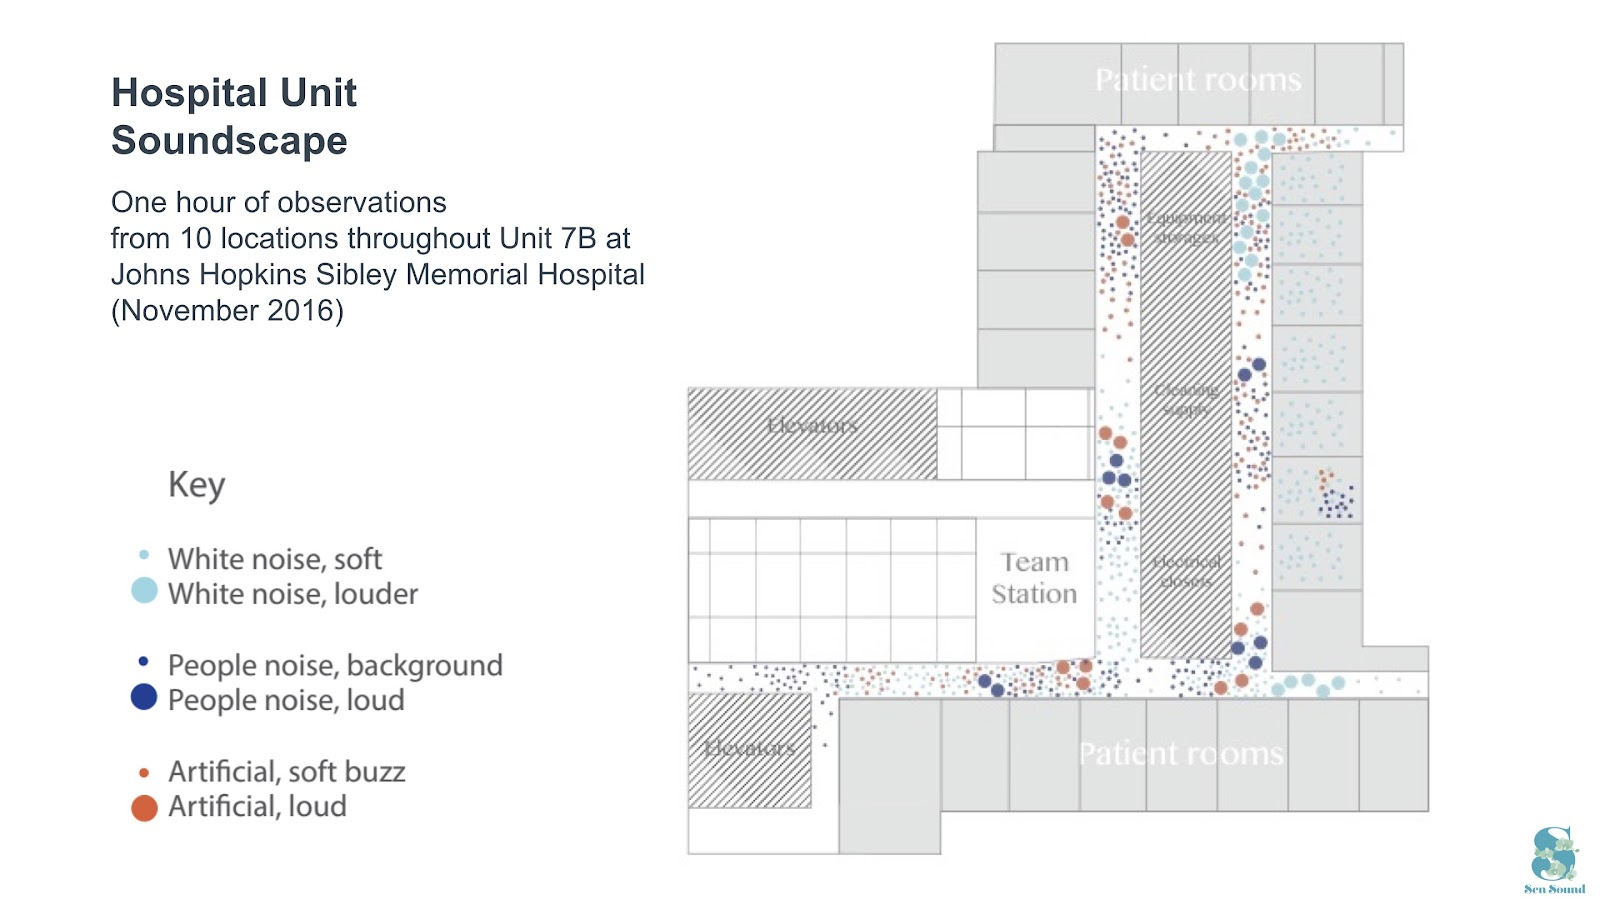 A soundscape map for a unit in the Johns Hopkins Sibley Memorial hospital visualizes the location, type and intensity of sound observed in a one hour period.